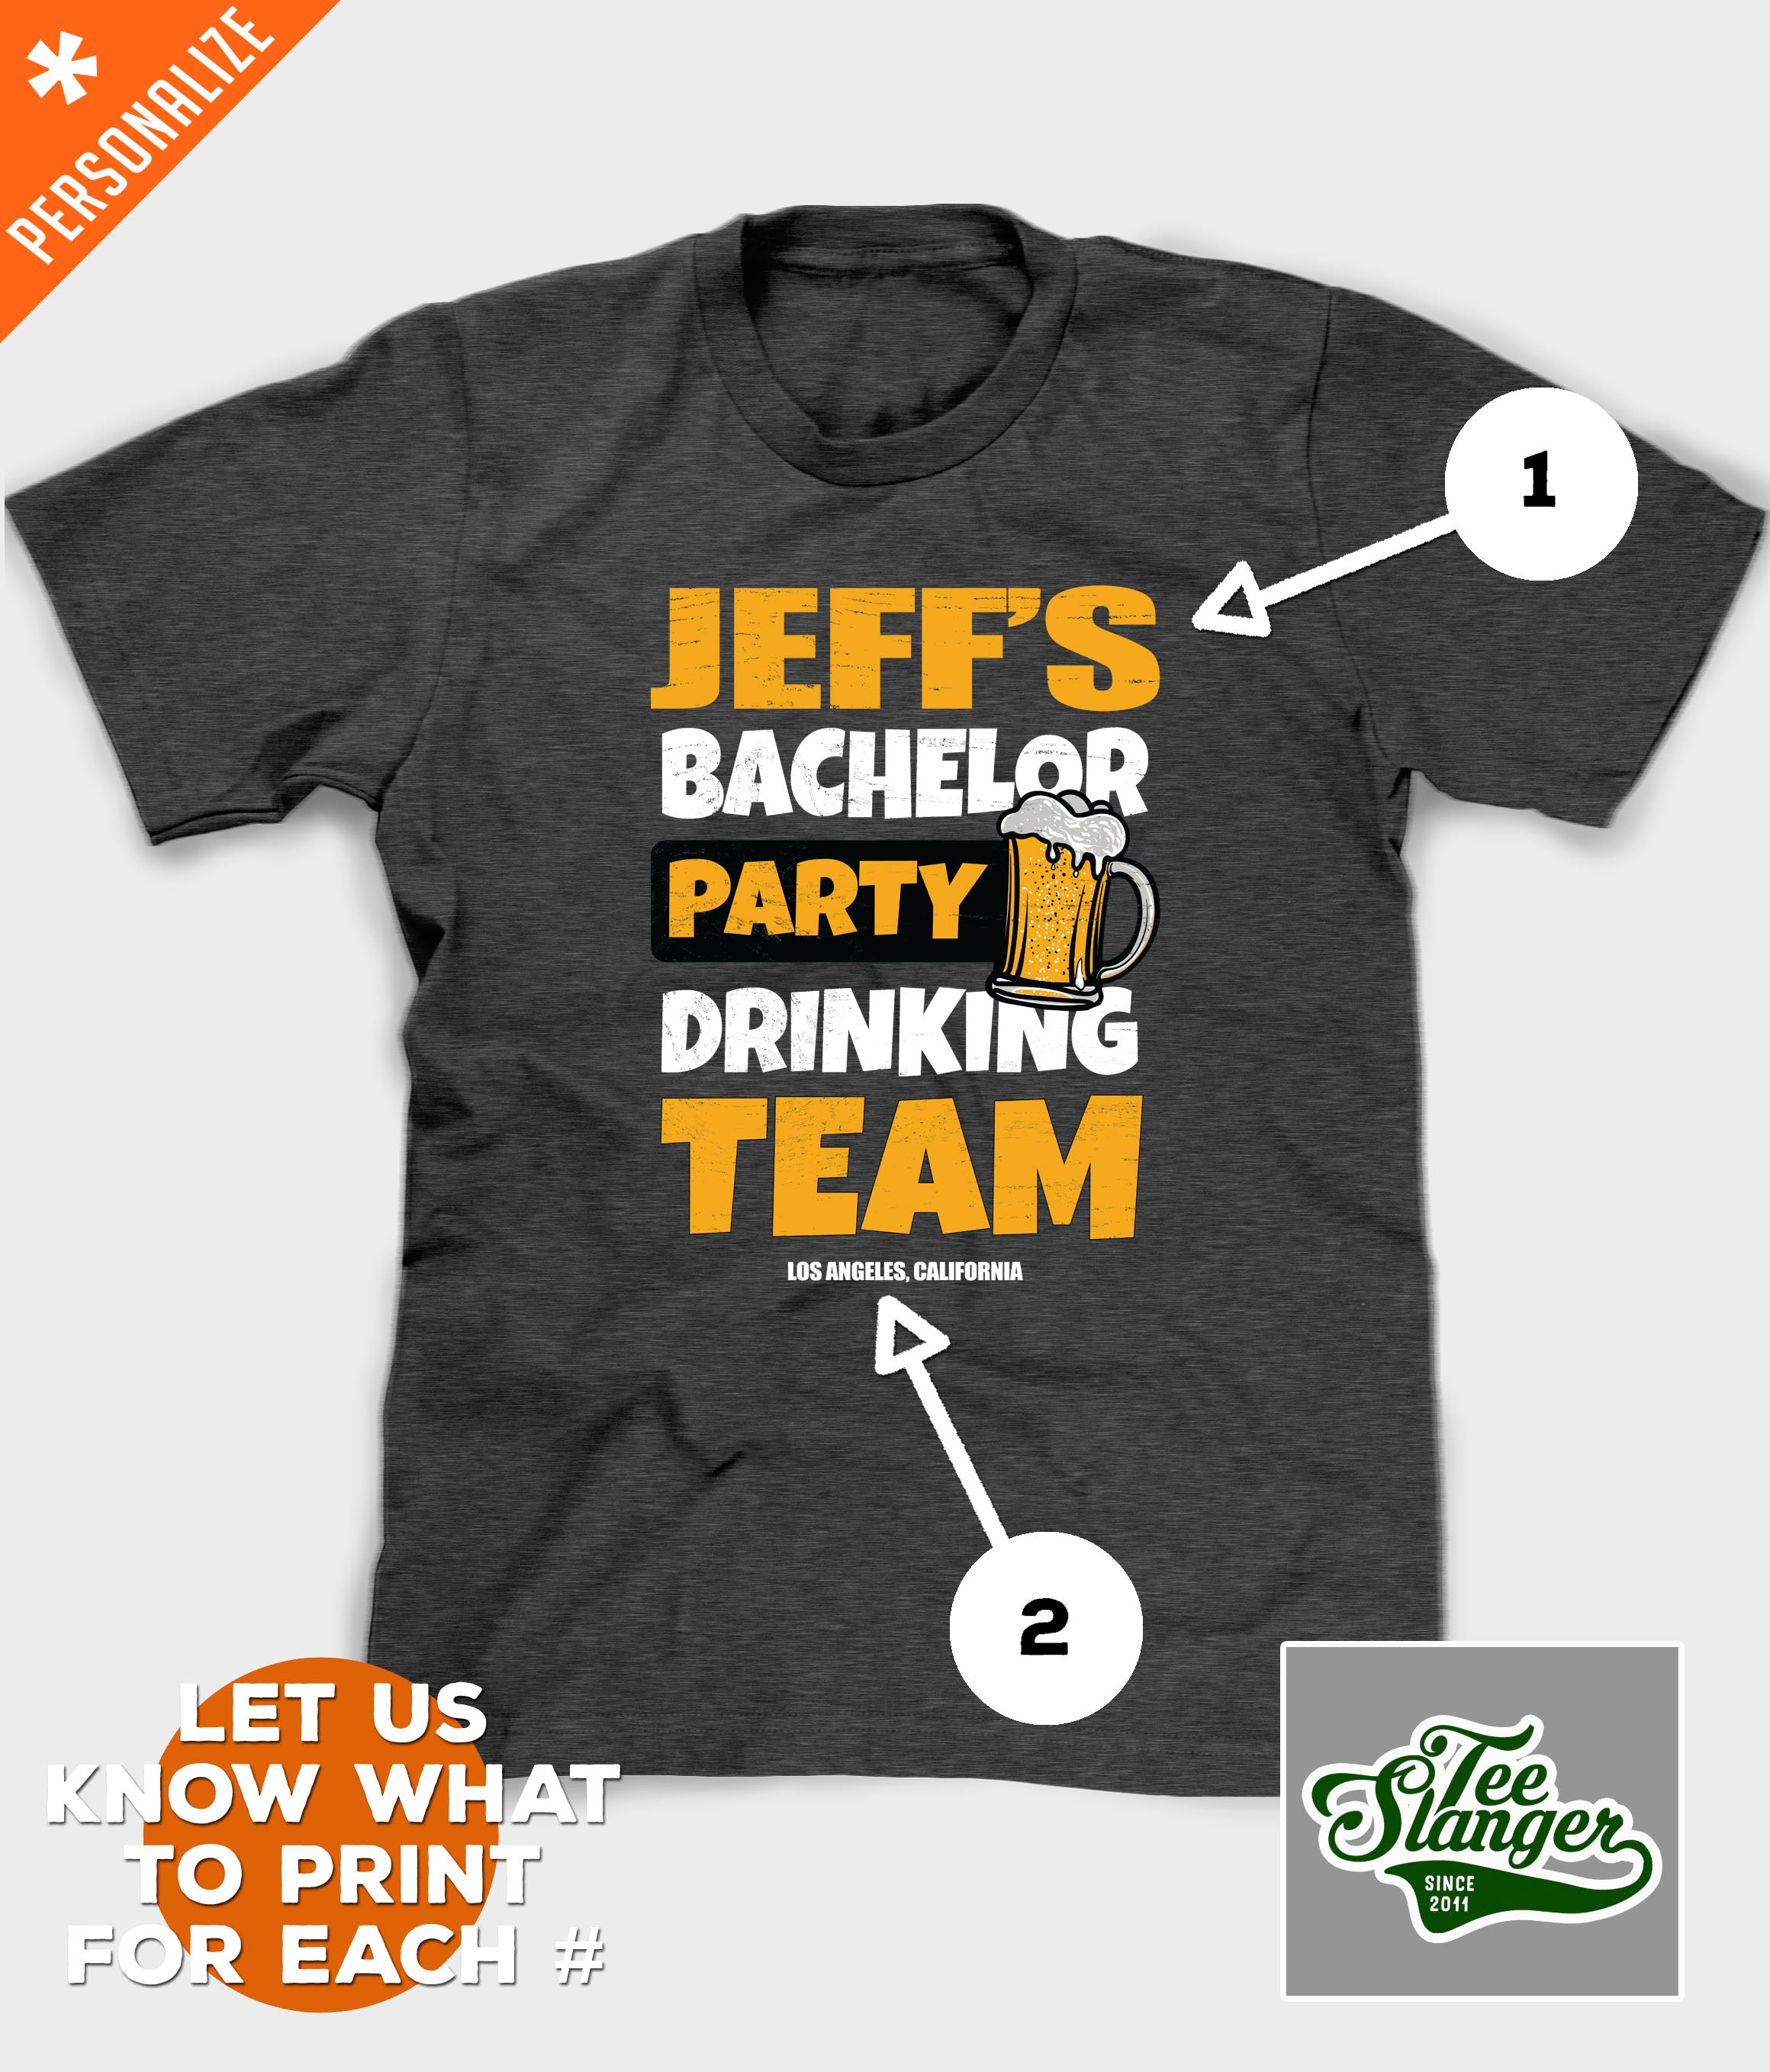 PERSONALIZED BACHELOR PARTY CUSTOMIZATION OPTIONS